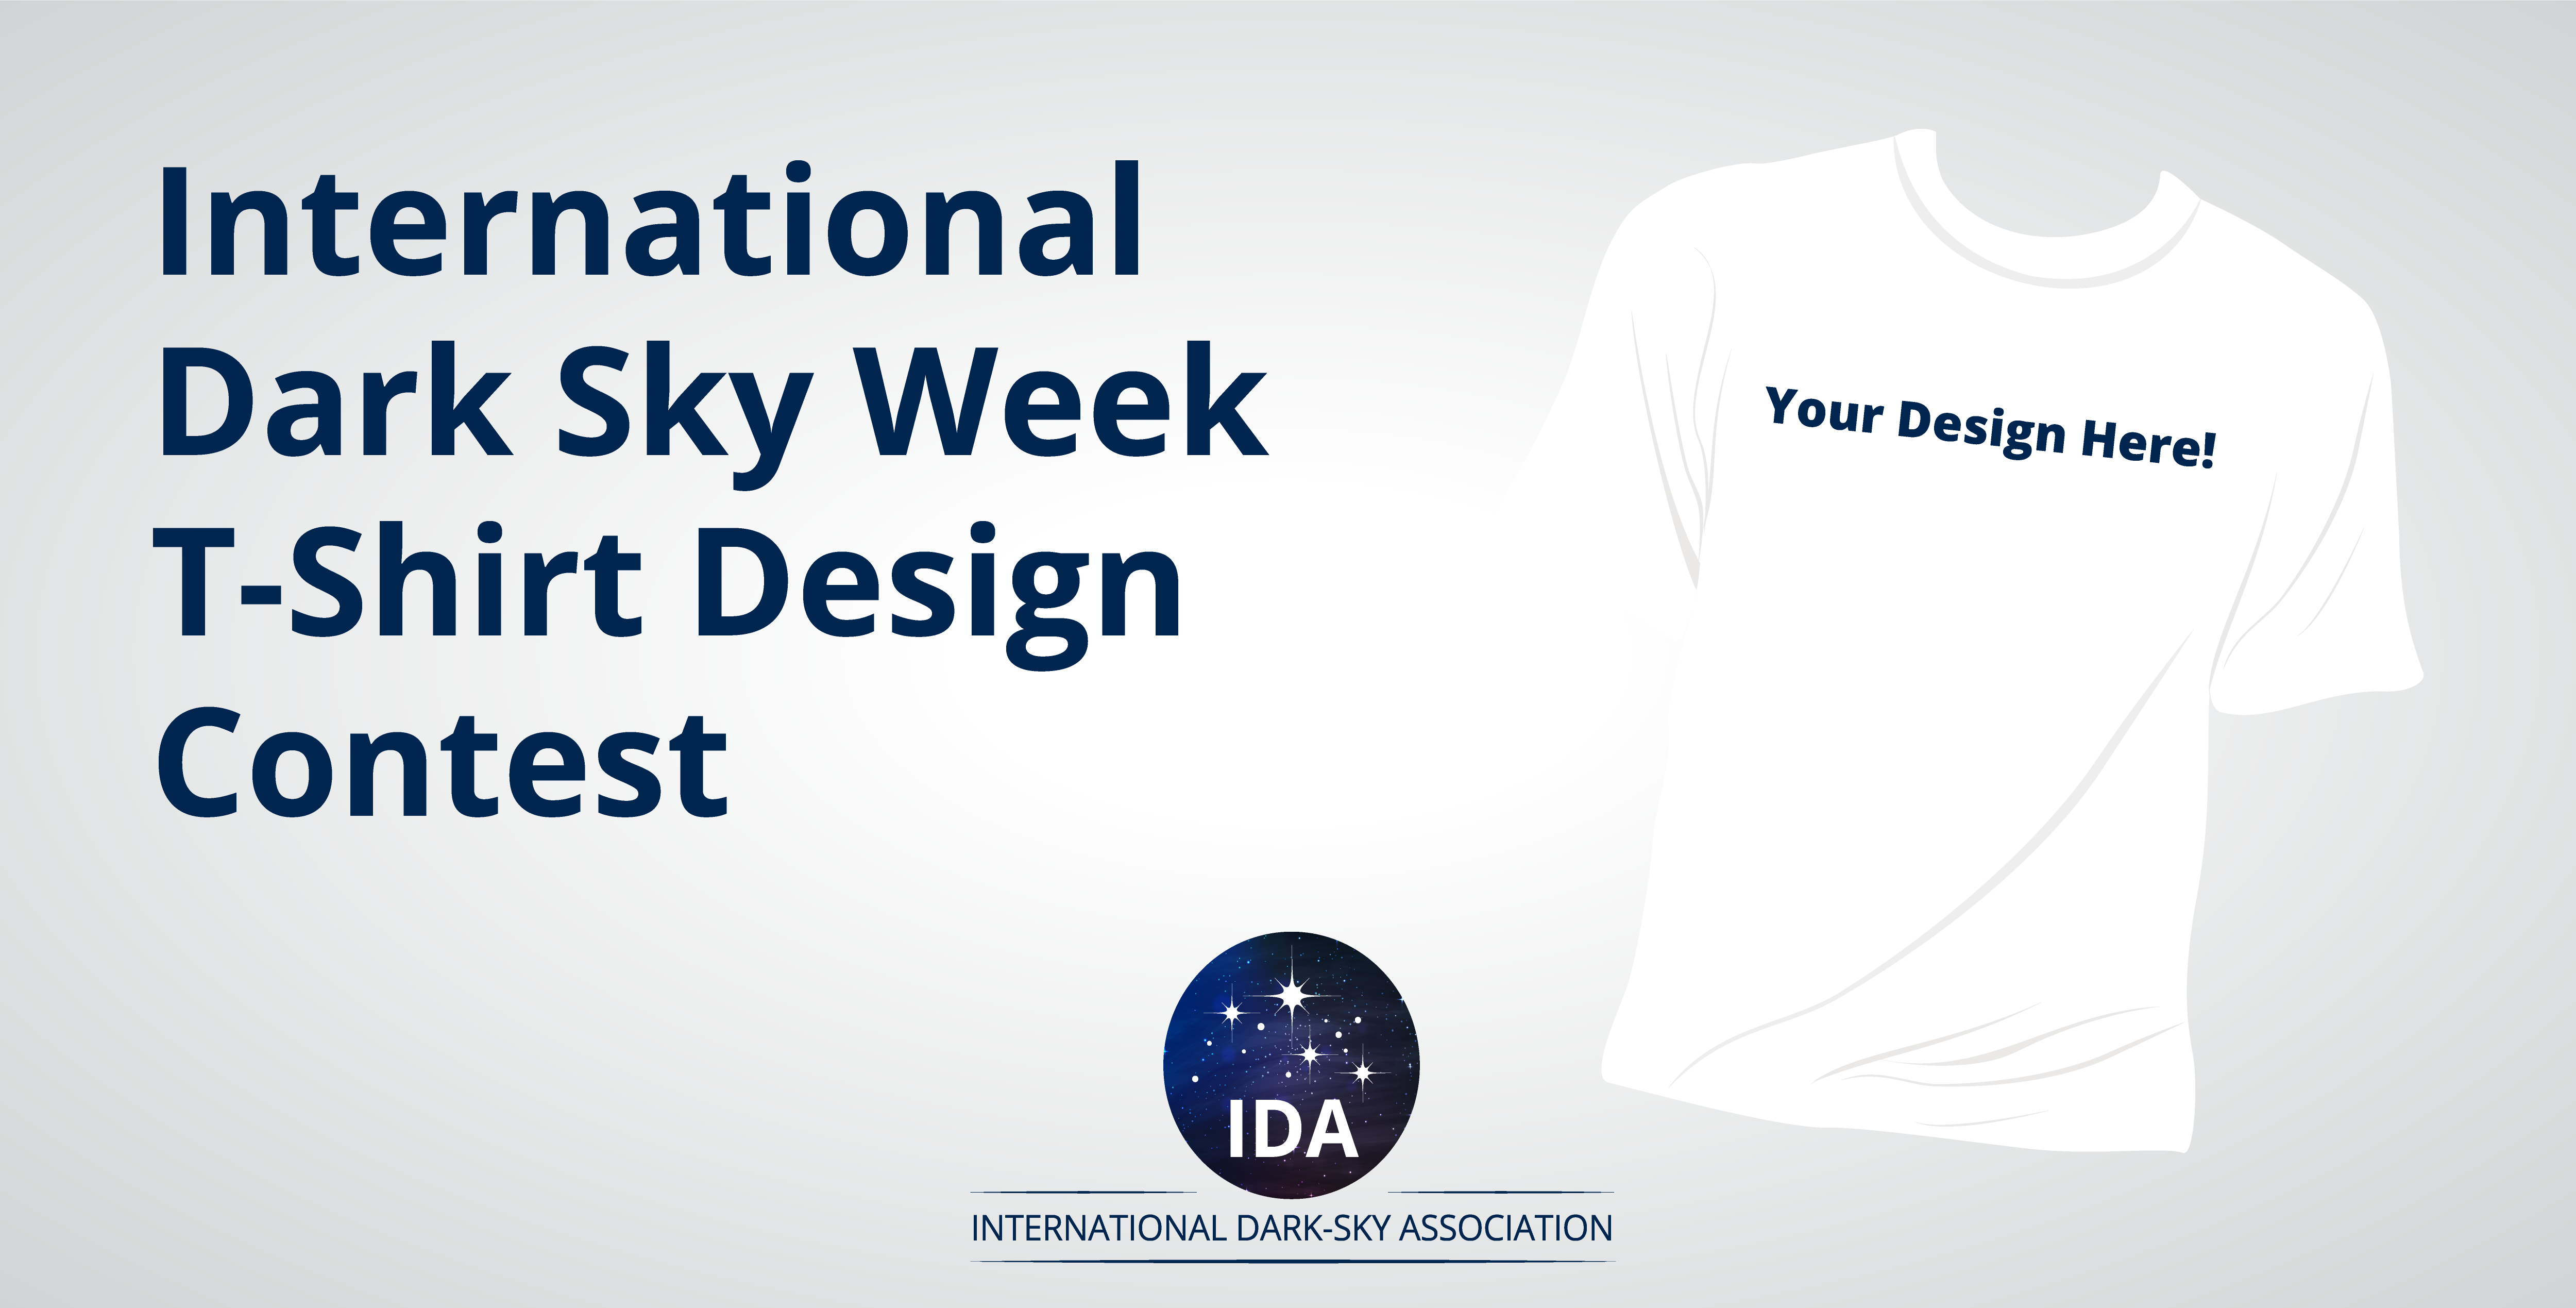 International Dark Sky Week T-Shirt Design Contest Image